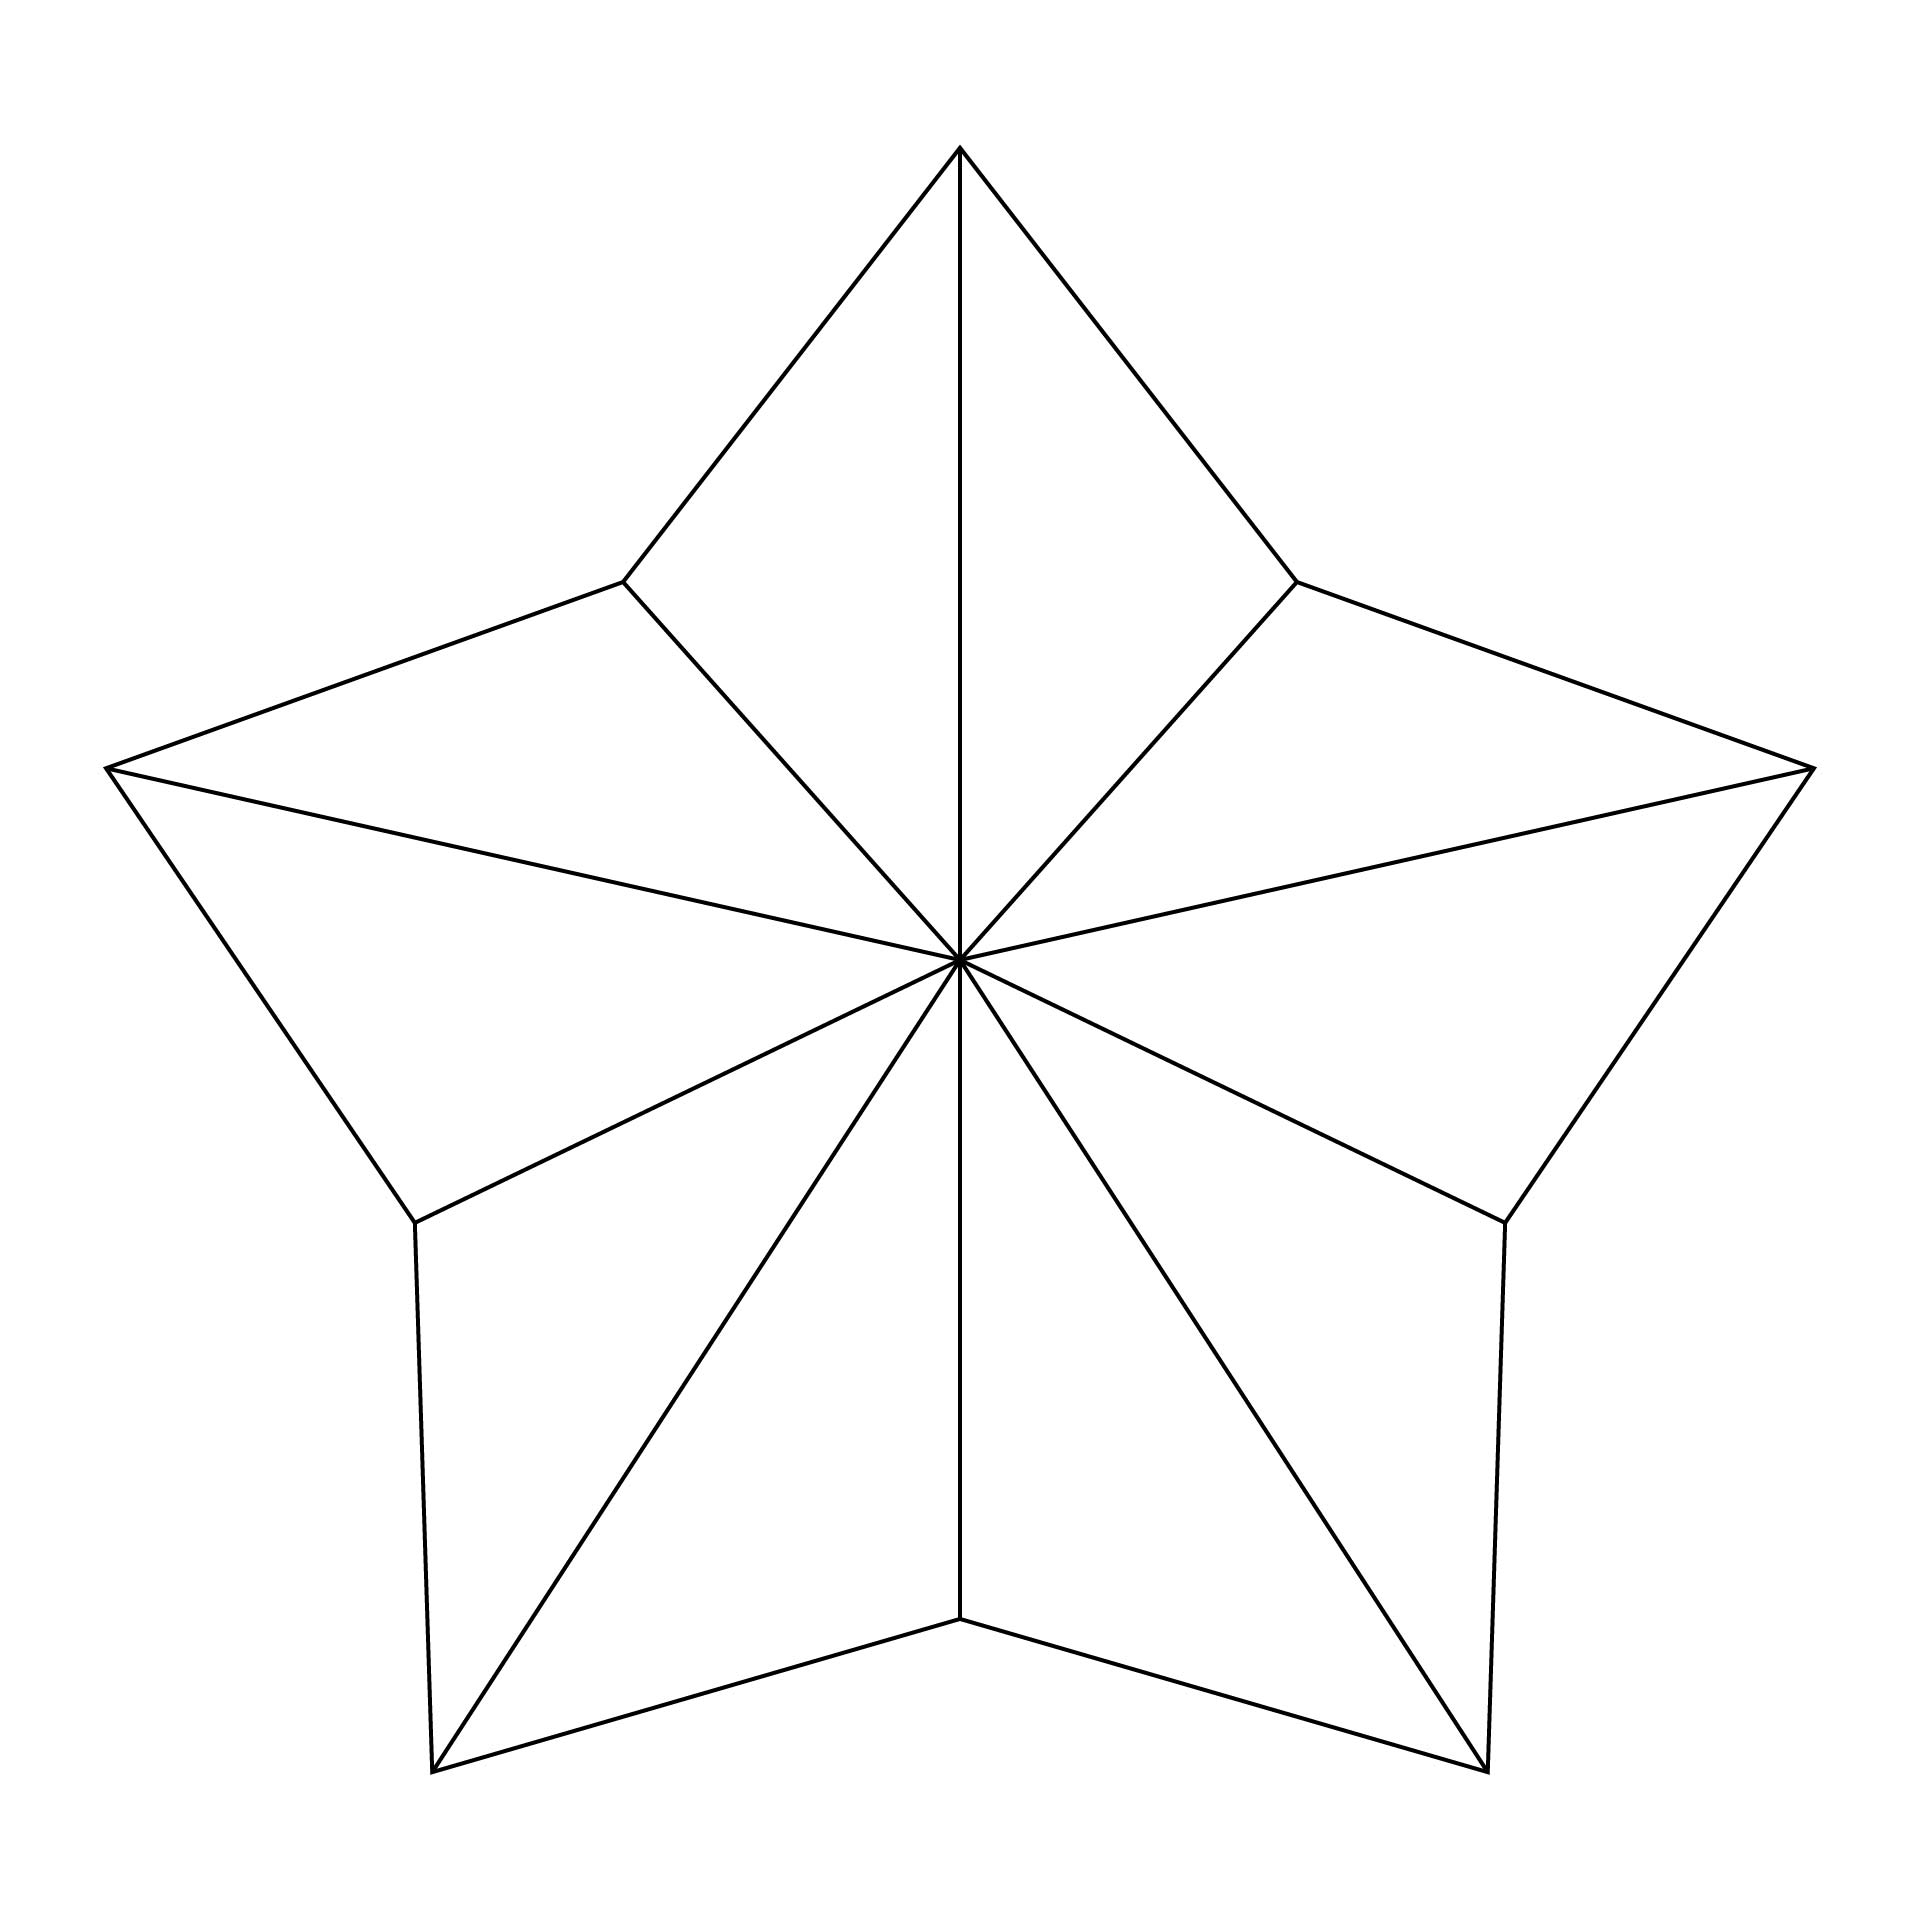 6 Best Images of Printable Cut Out Star Shape - Free ...